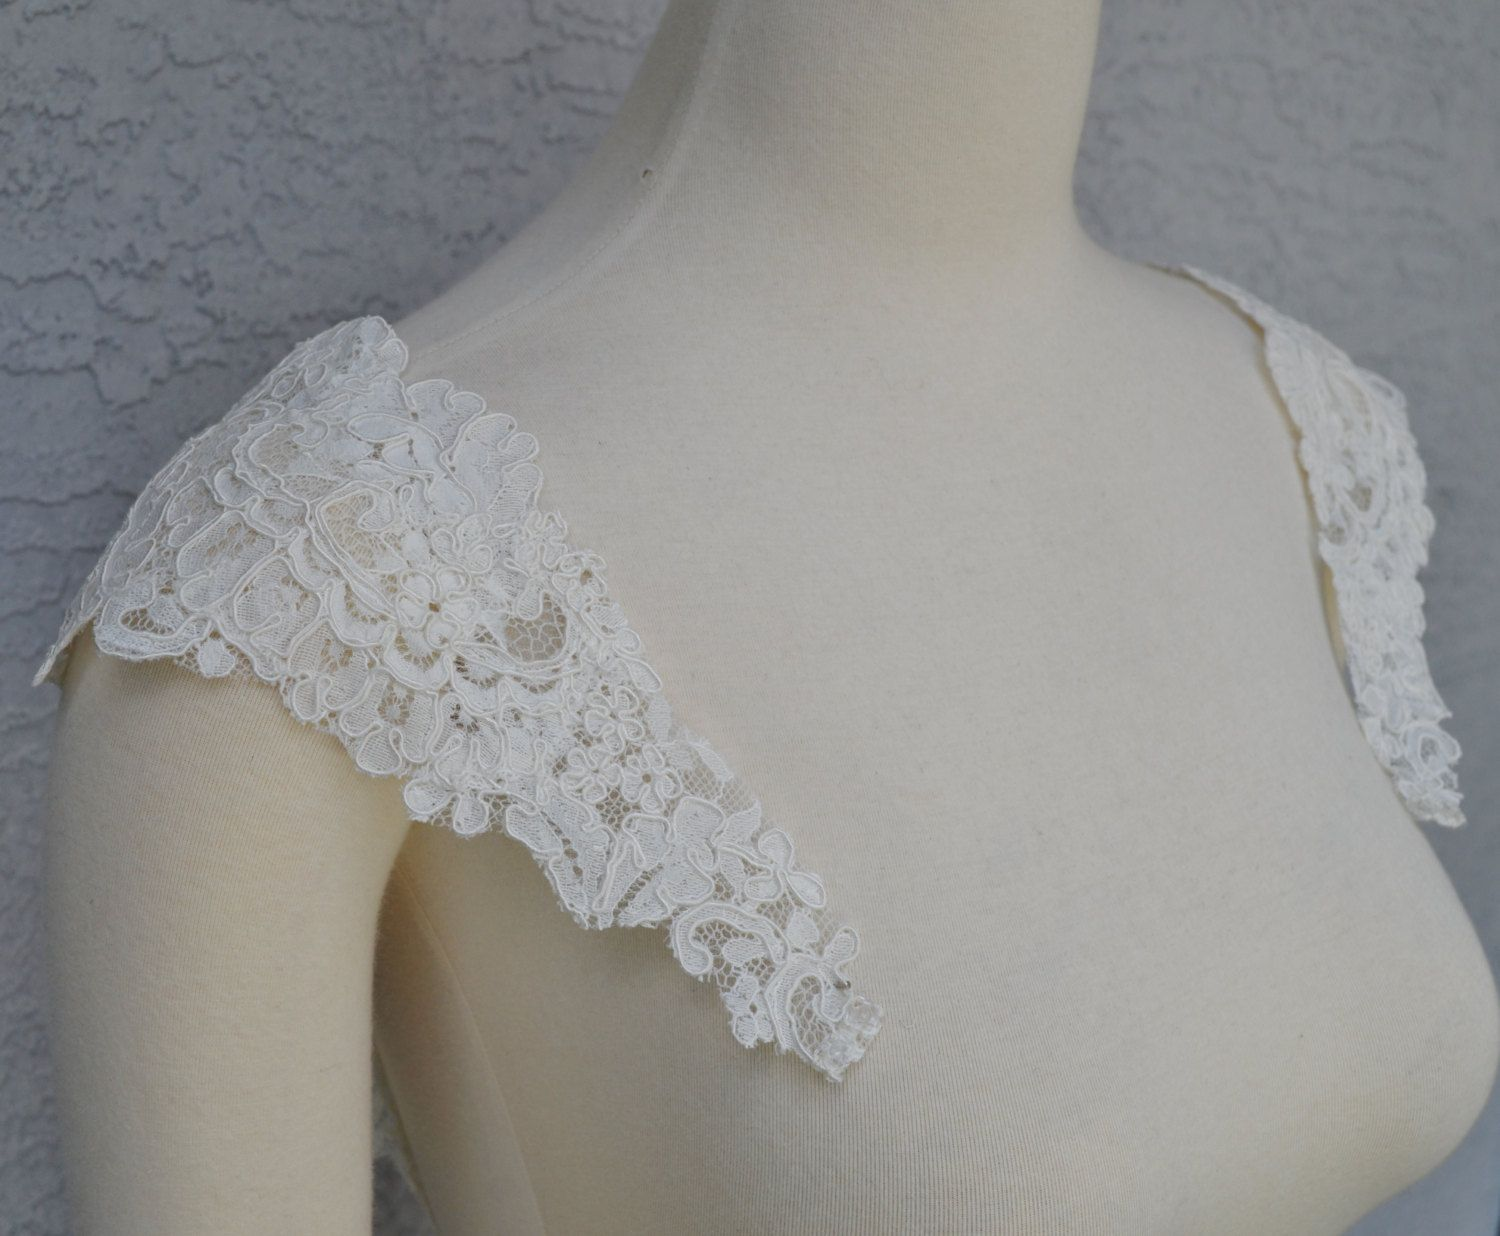 dd3f4b36ca40 Detachable Ivory Alencon Lace Straps to Add to your Wedding Dress it Can be  Customize by Chuletindesigns on Etsy